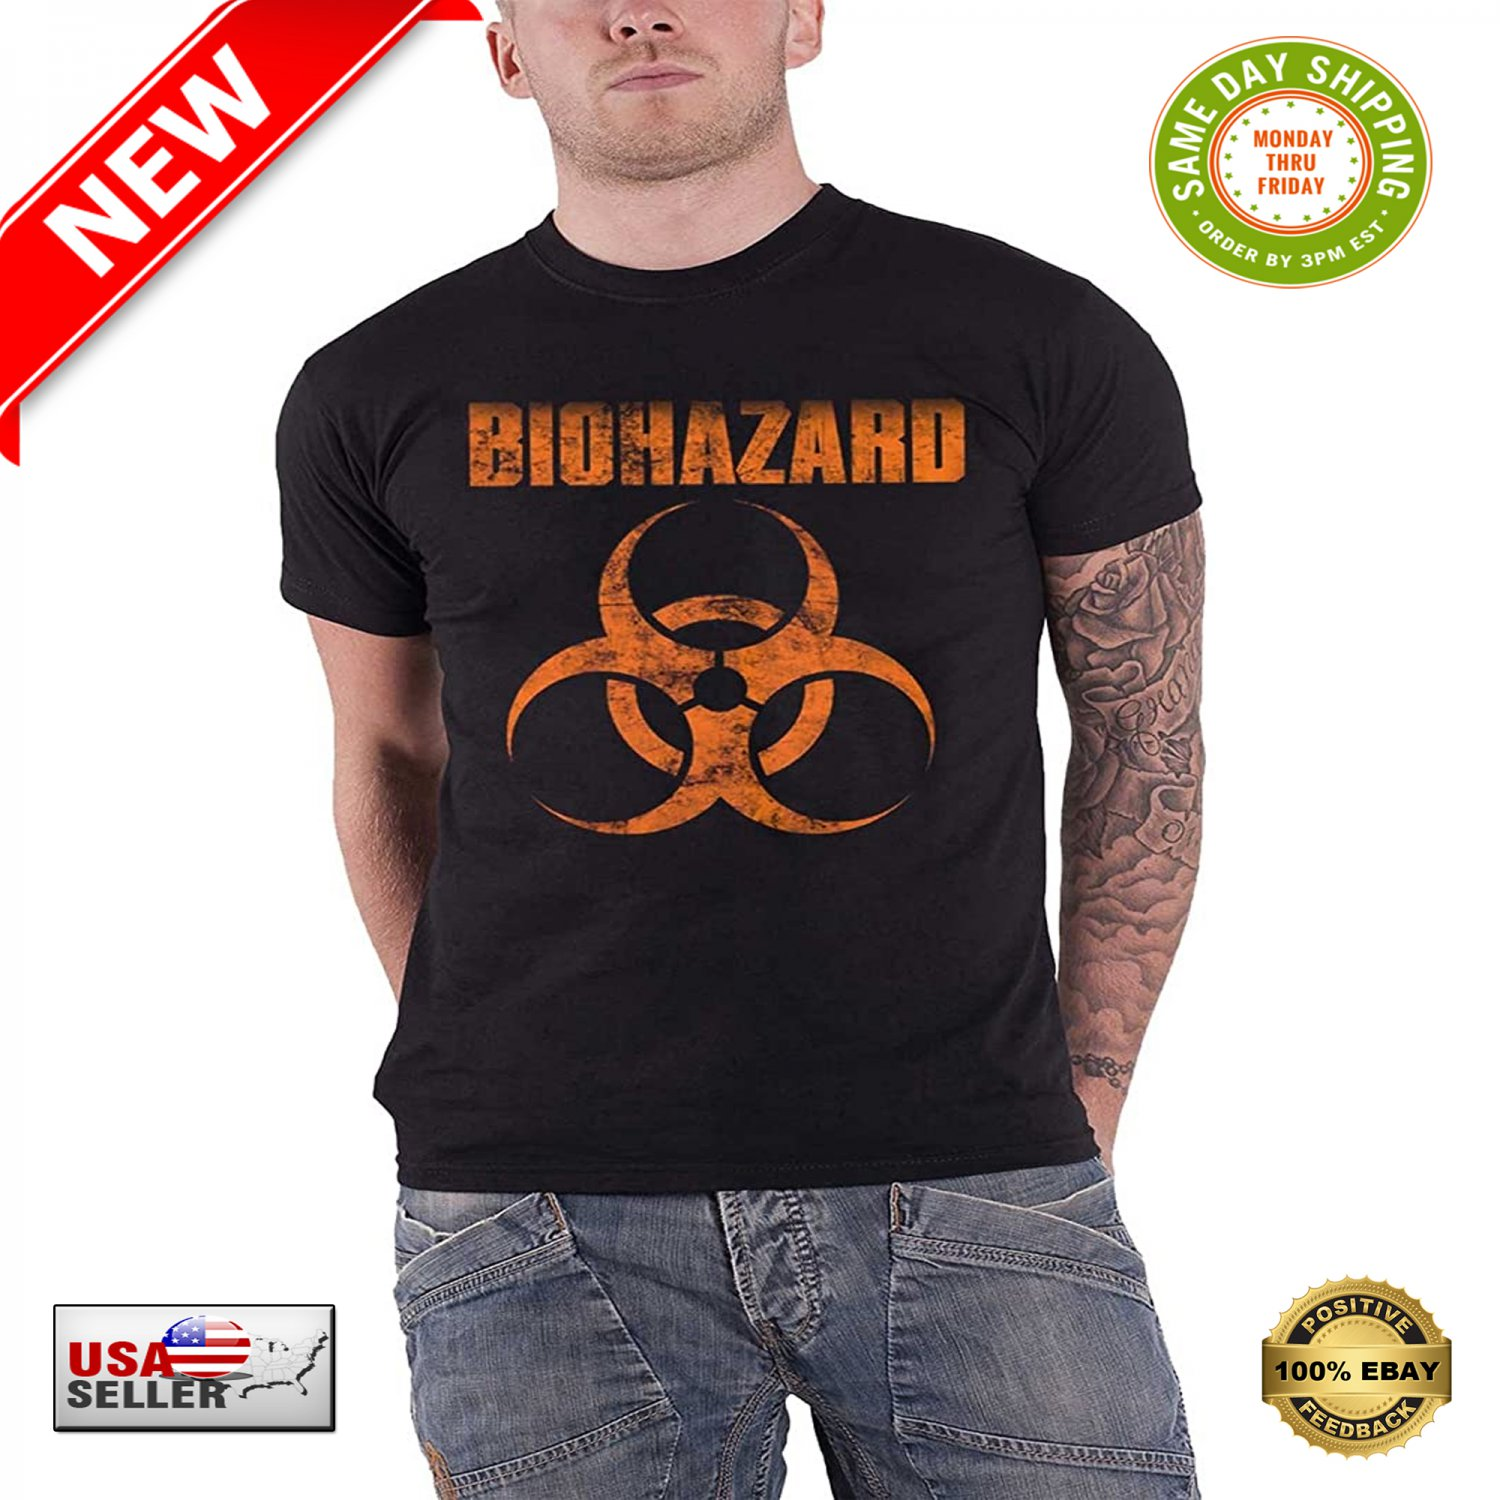 � Biohazard T Shirt Band Logo Urban Discipline Official Mens Black XL Extra Large �